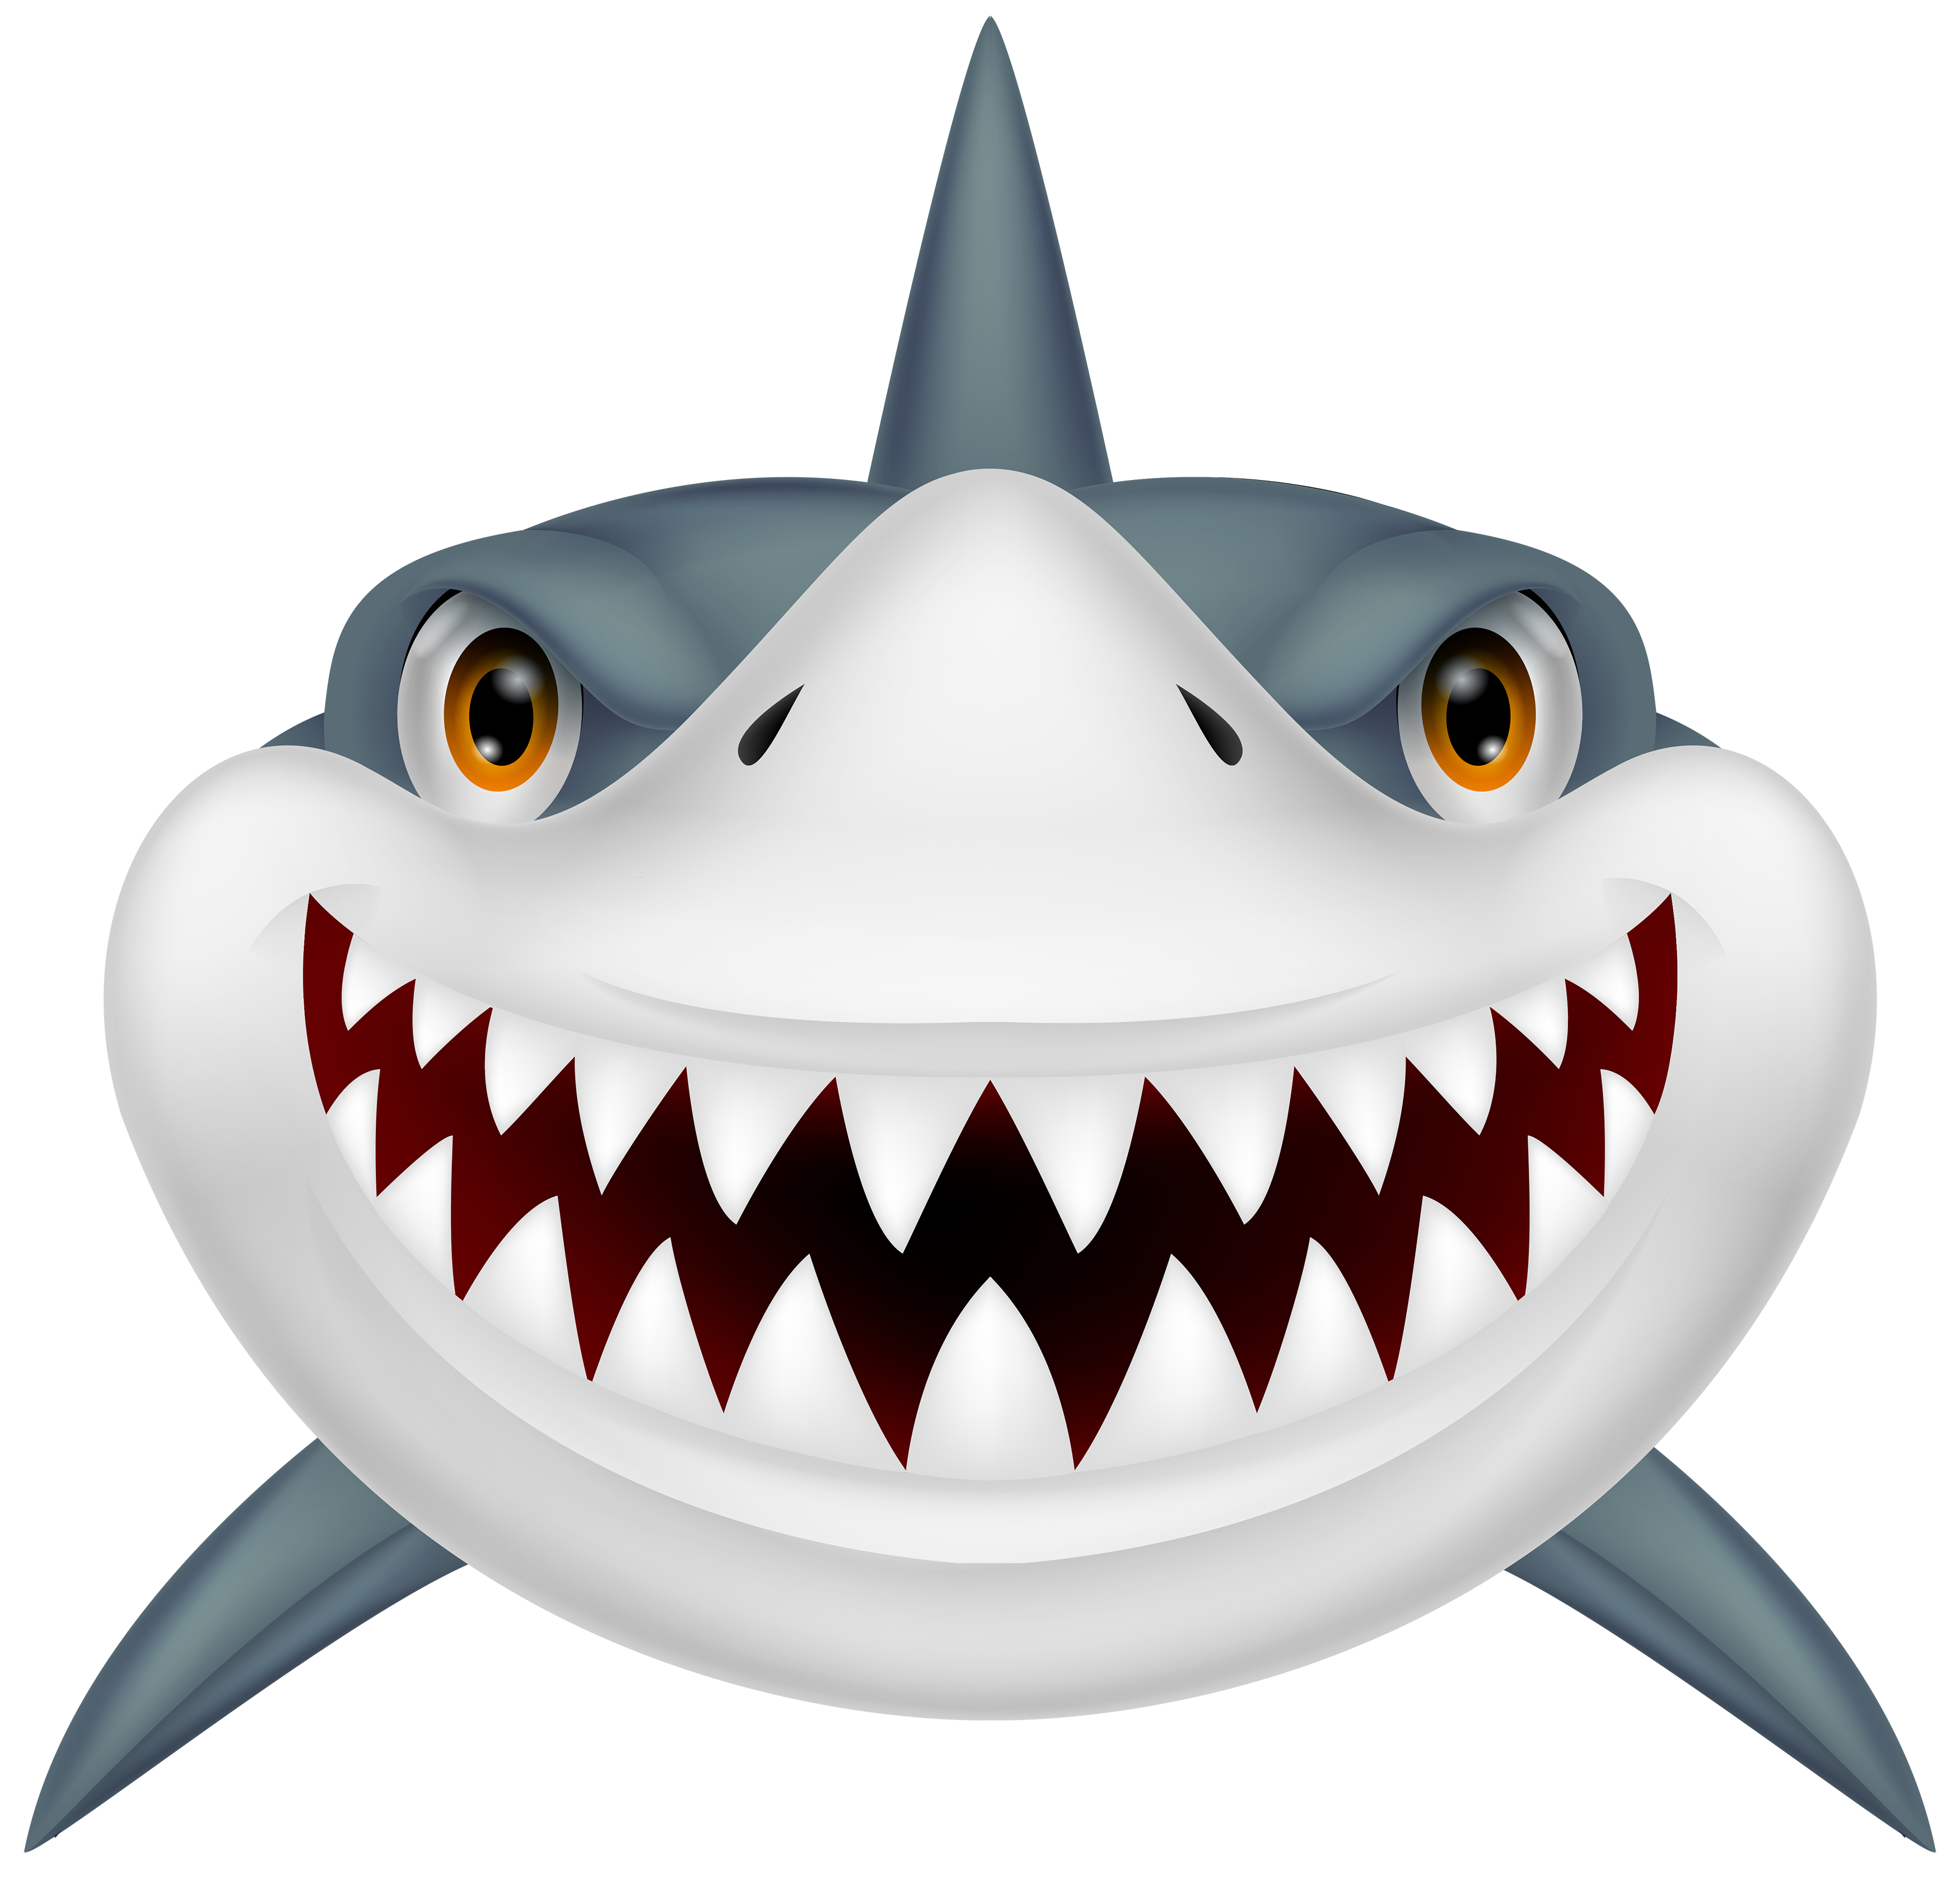 3500x3387 Shark Clip Art Black And White Free Clipart Image 4 Places